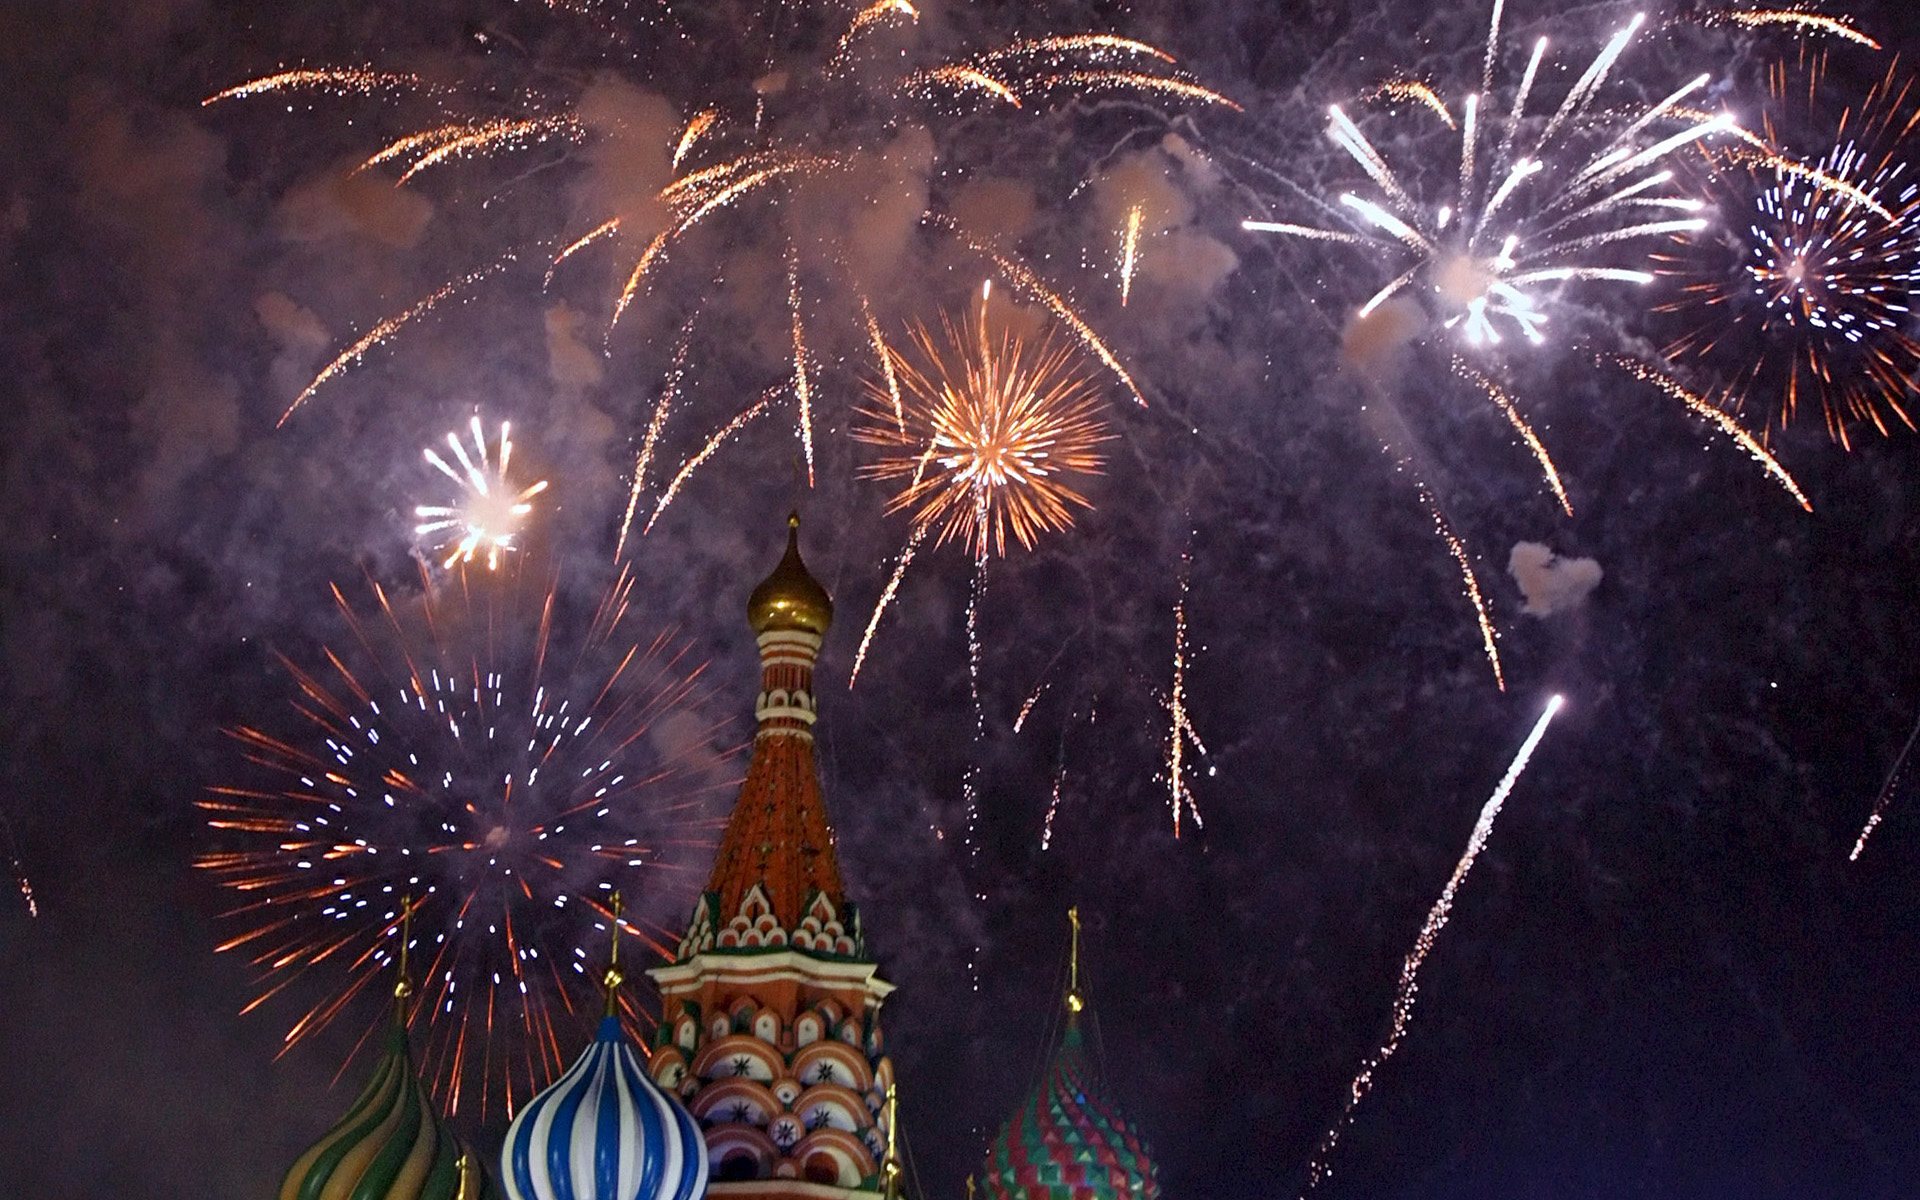 Wallpaper Victory Day Russia Holidays Hd Celebrations: New Year Celebrations At St. Basil's Cathedral, Moscow